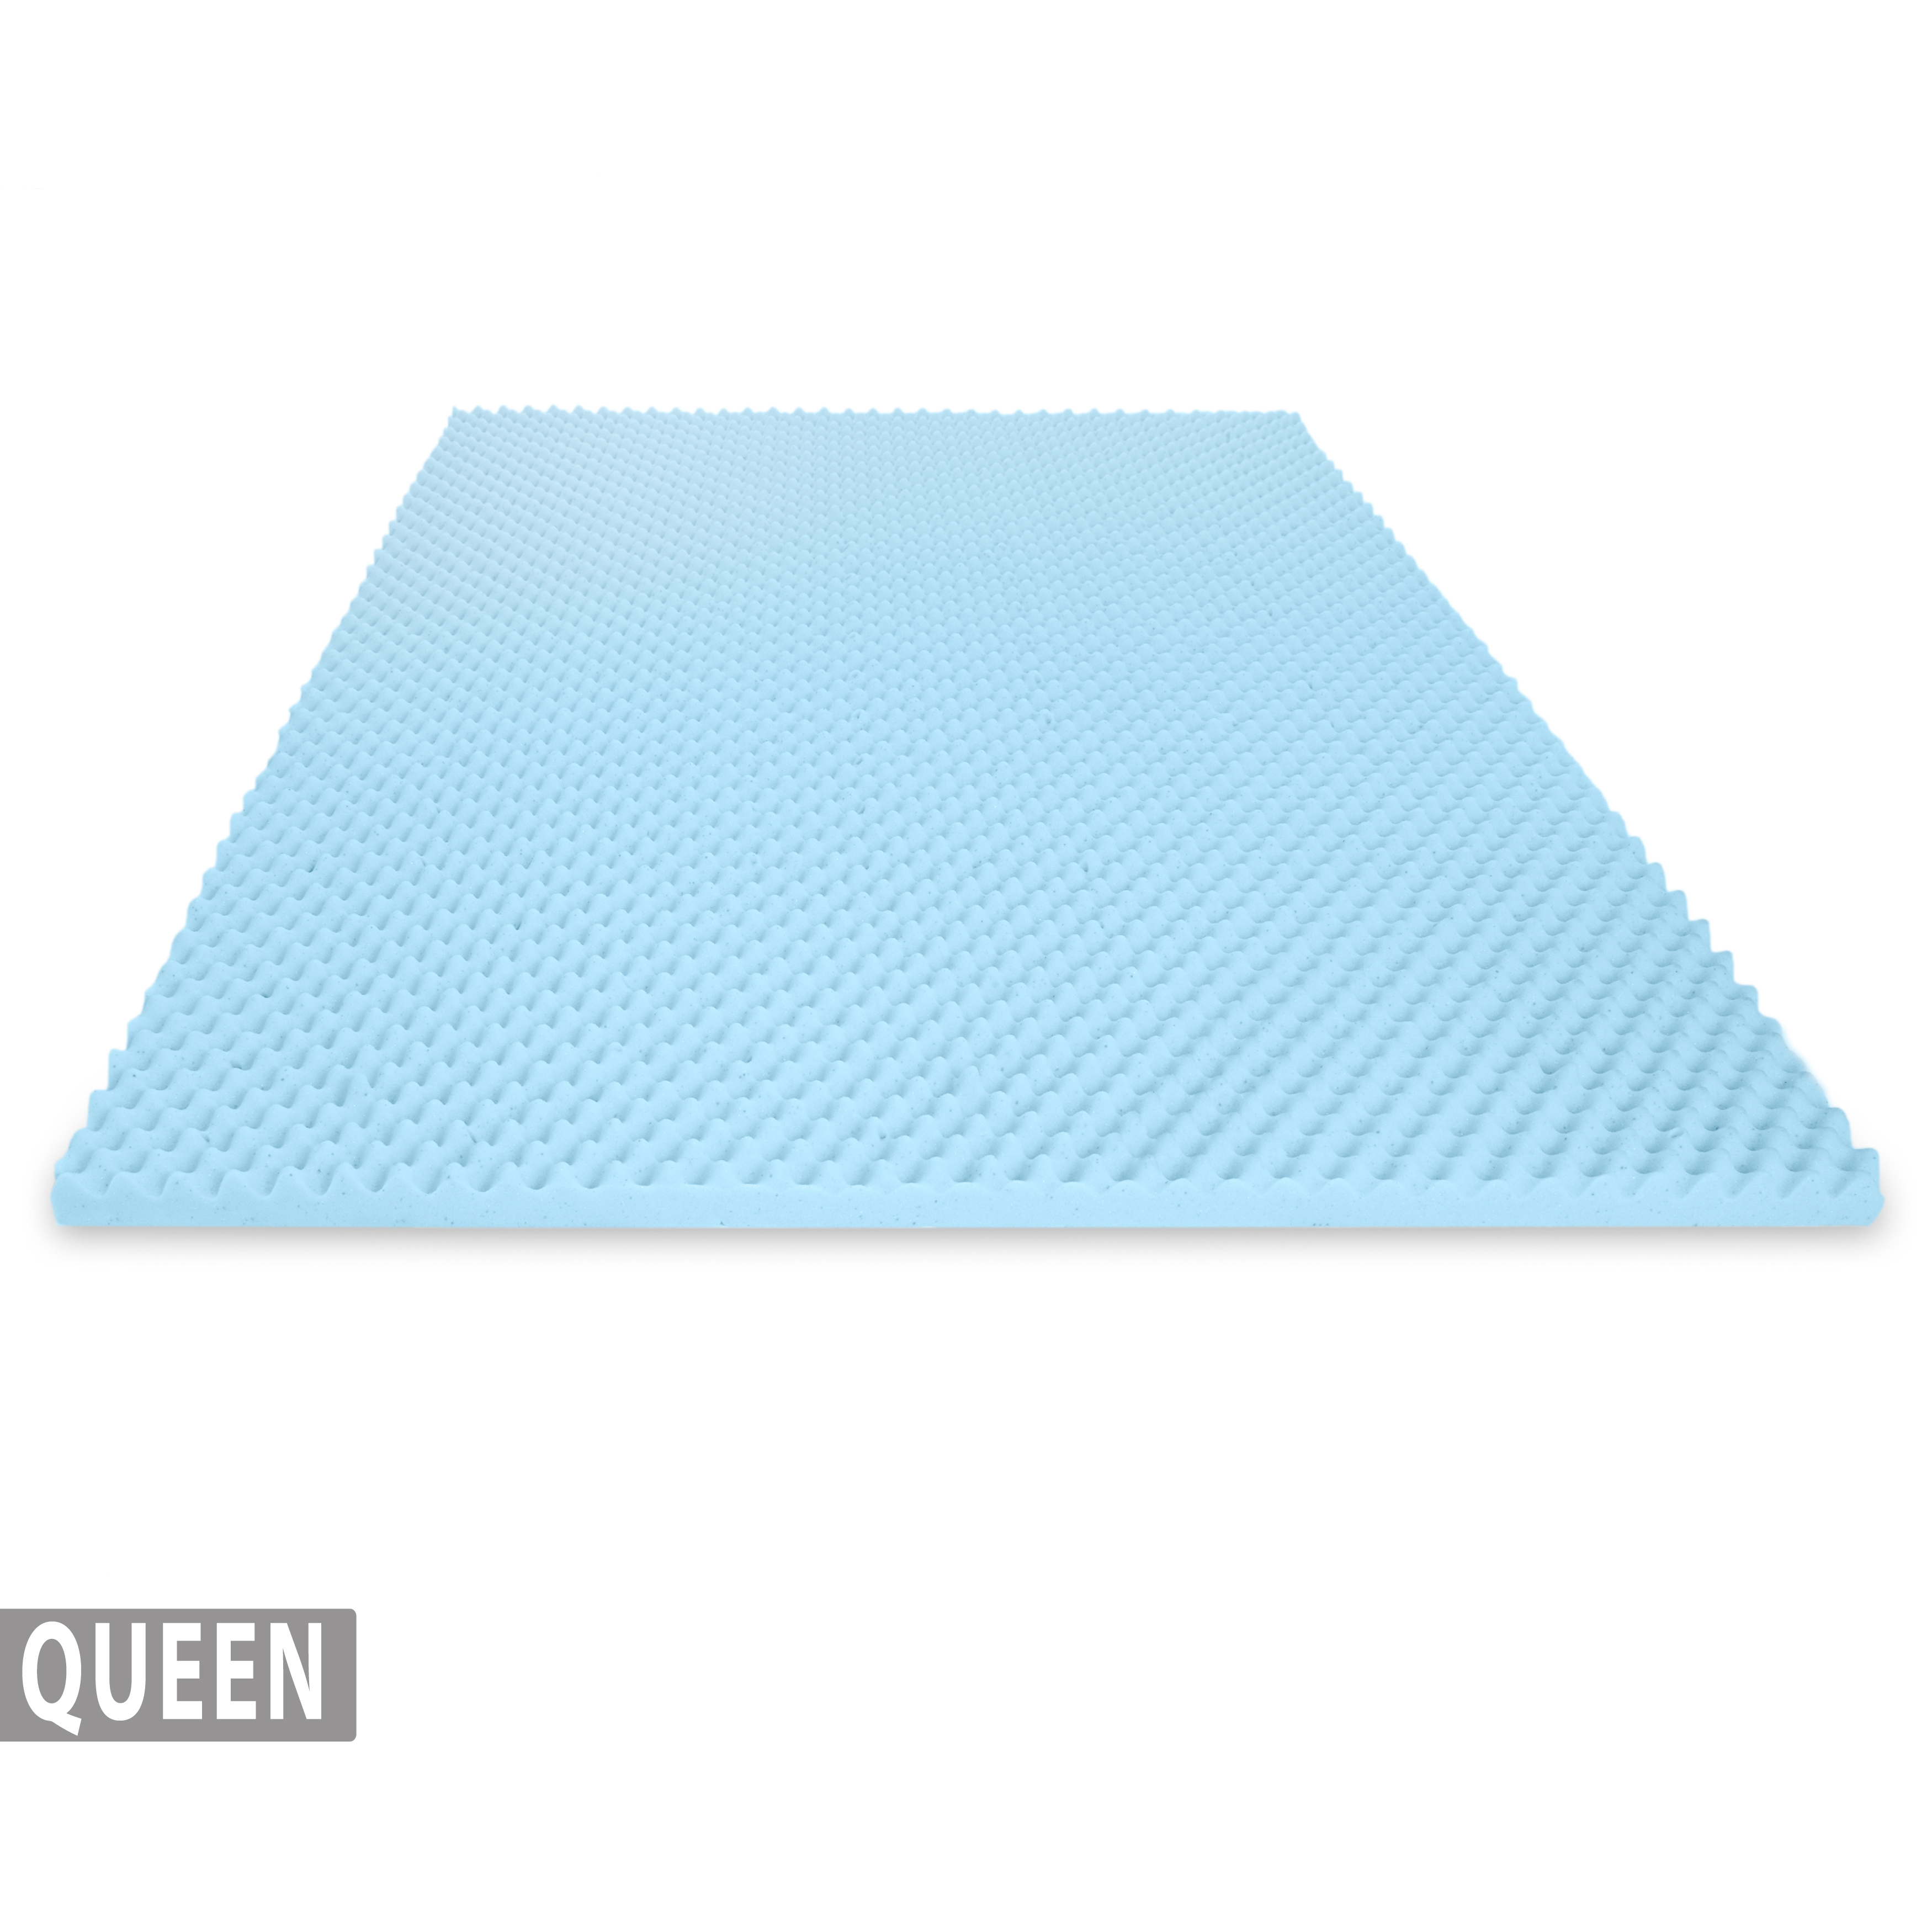 Egg Crate Gel Infused Memory Foam Mattress Topper – Queen